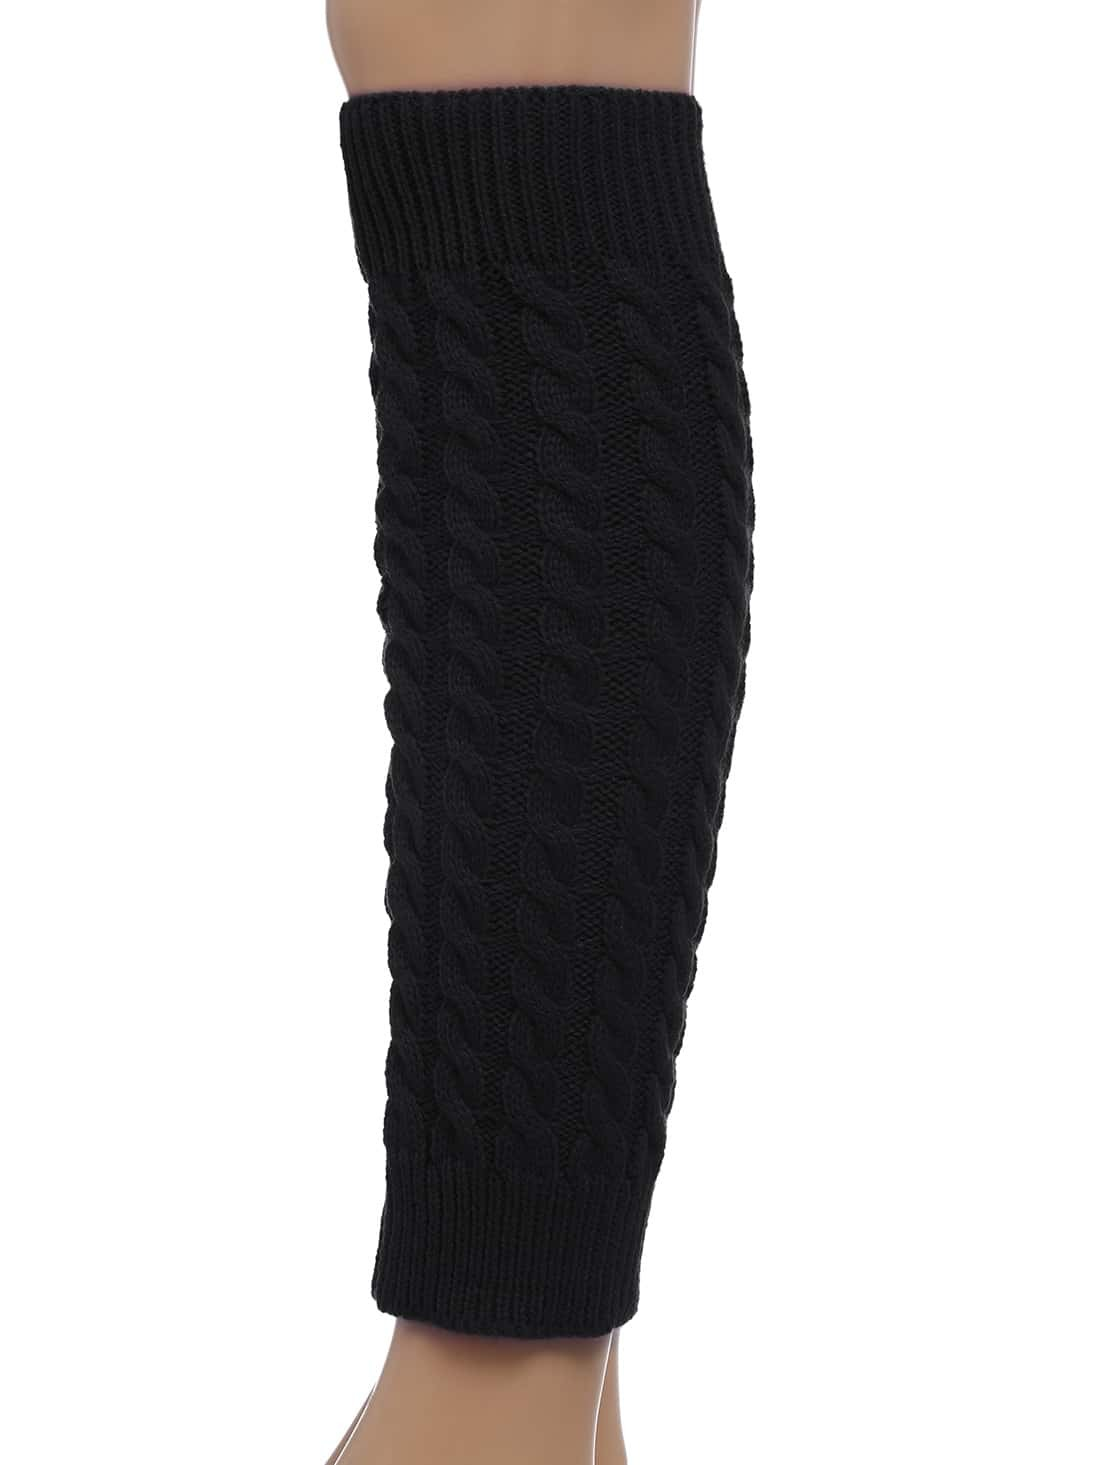 Free Knitting Patterns Leg Warmer Socks : Black Leg Warmers Knitting Crochet Socks -SheIn(Sheinside)